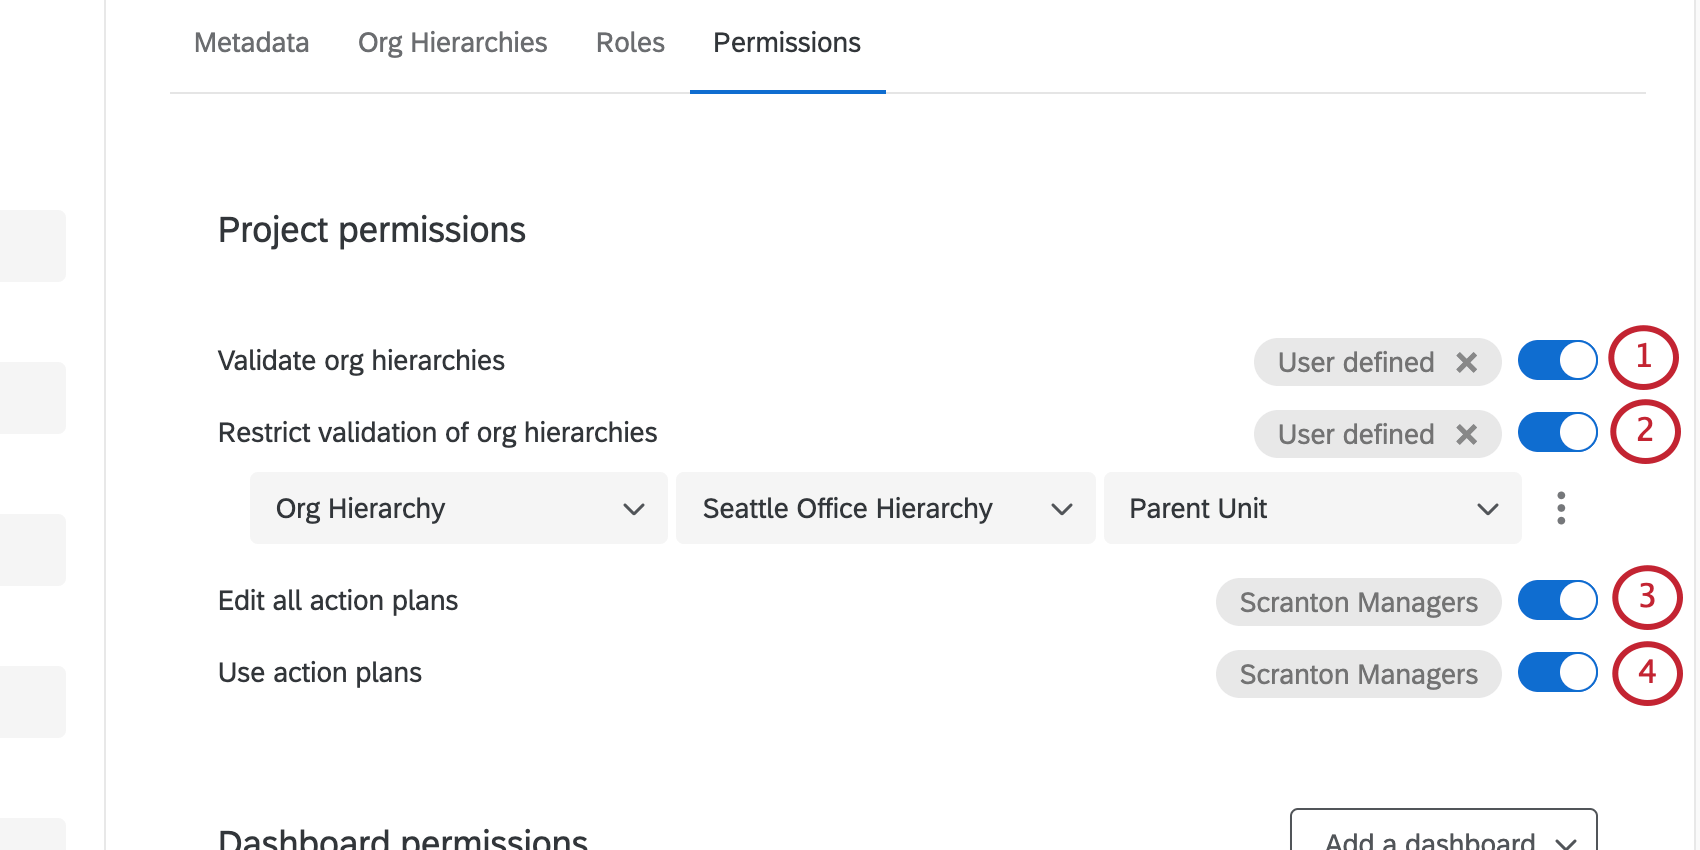 Validate Org Hierarchies permission and all associated settings are highlighted in the Permissions tab